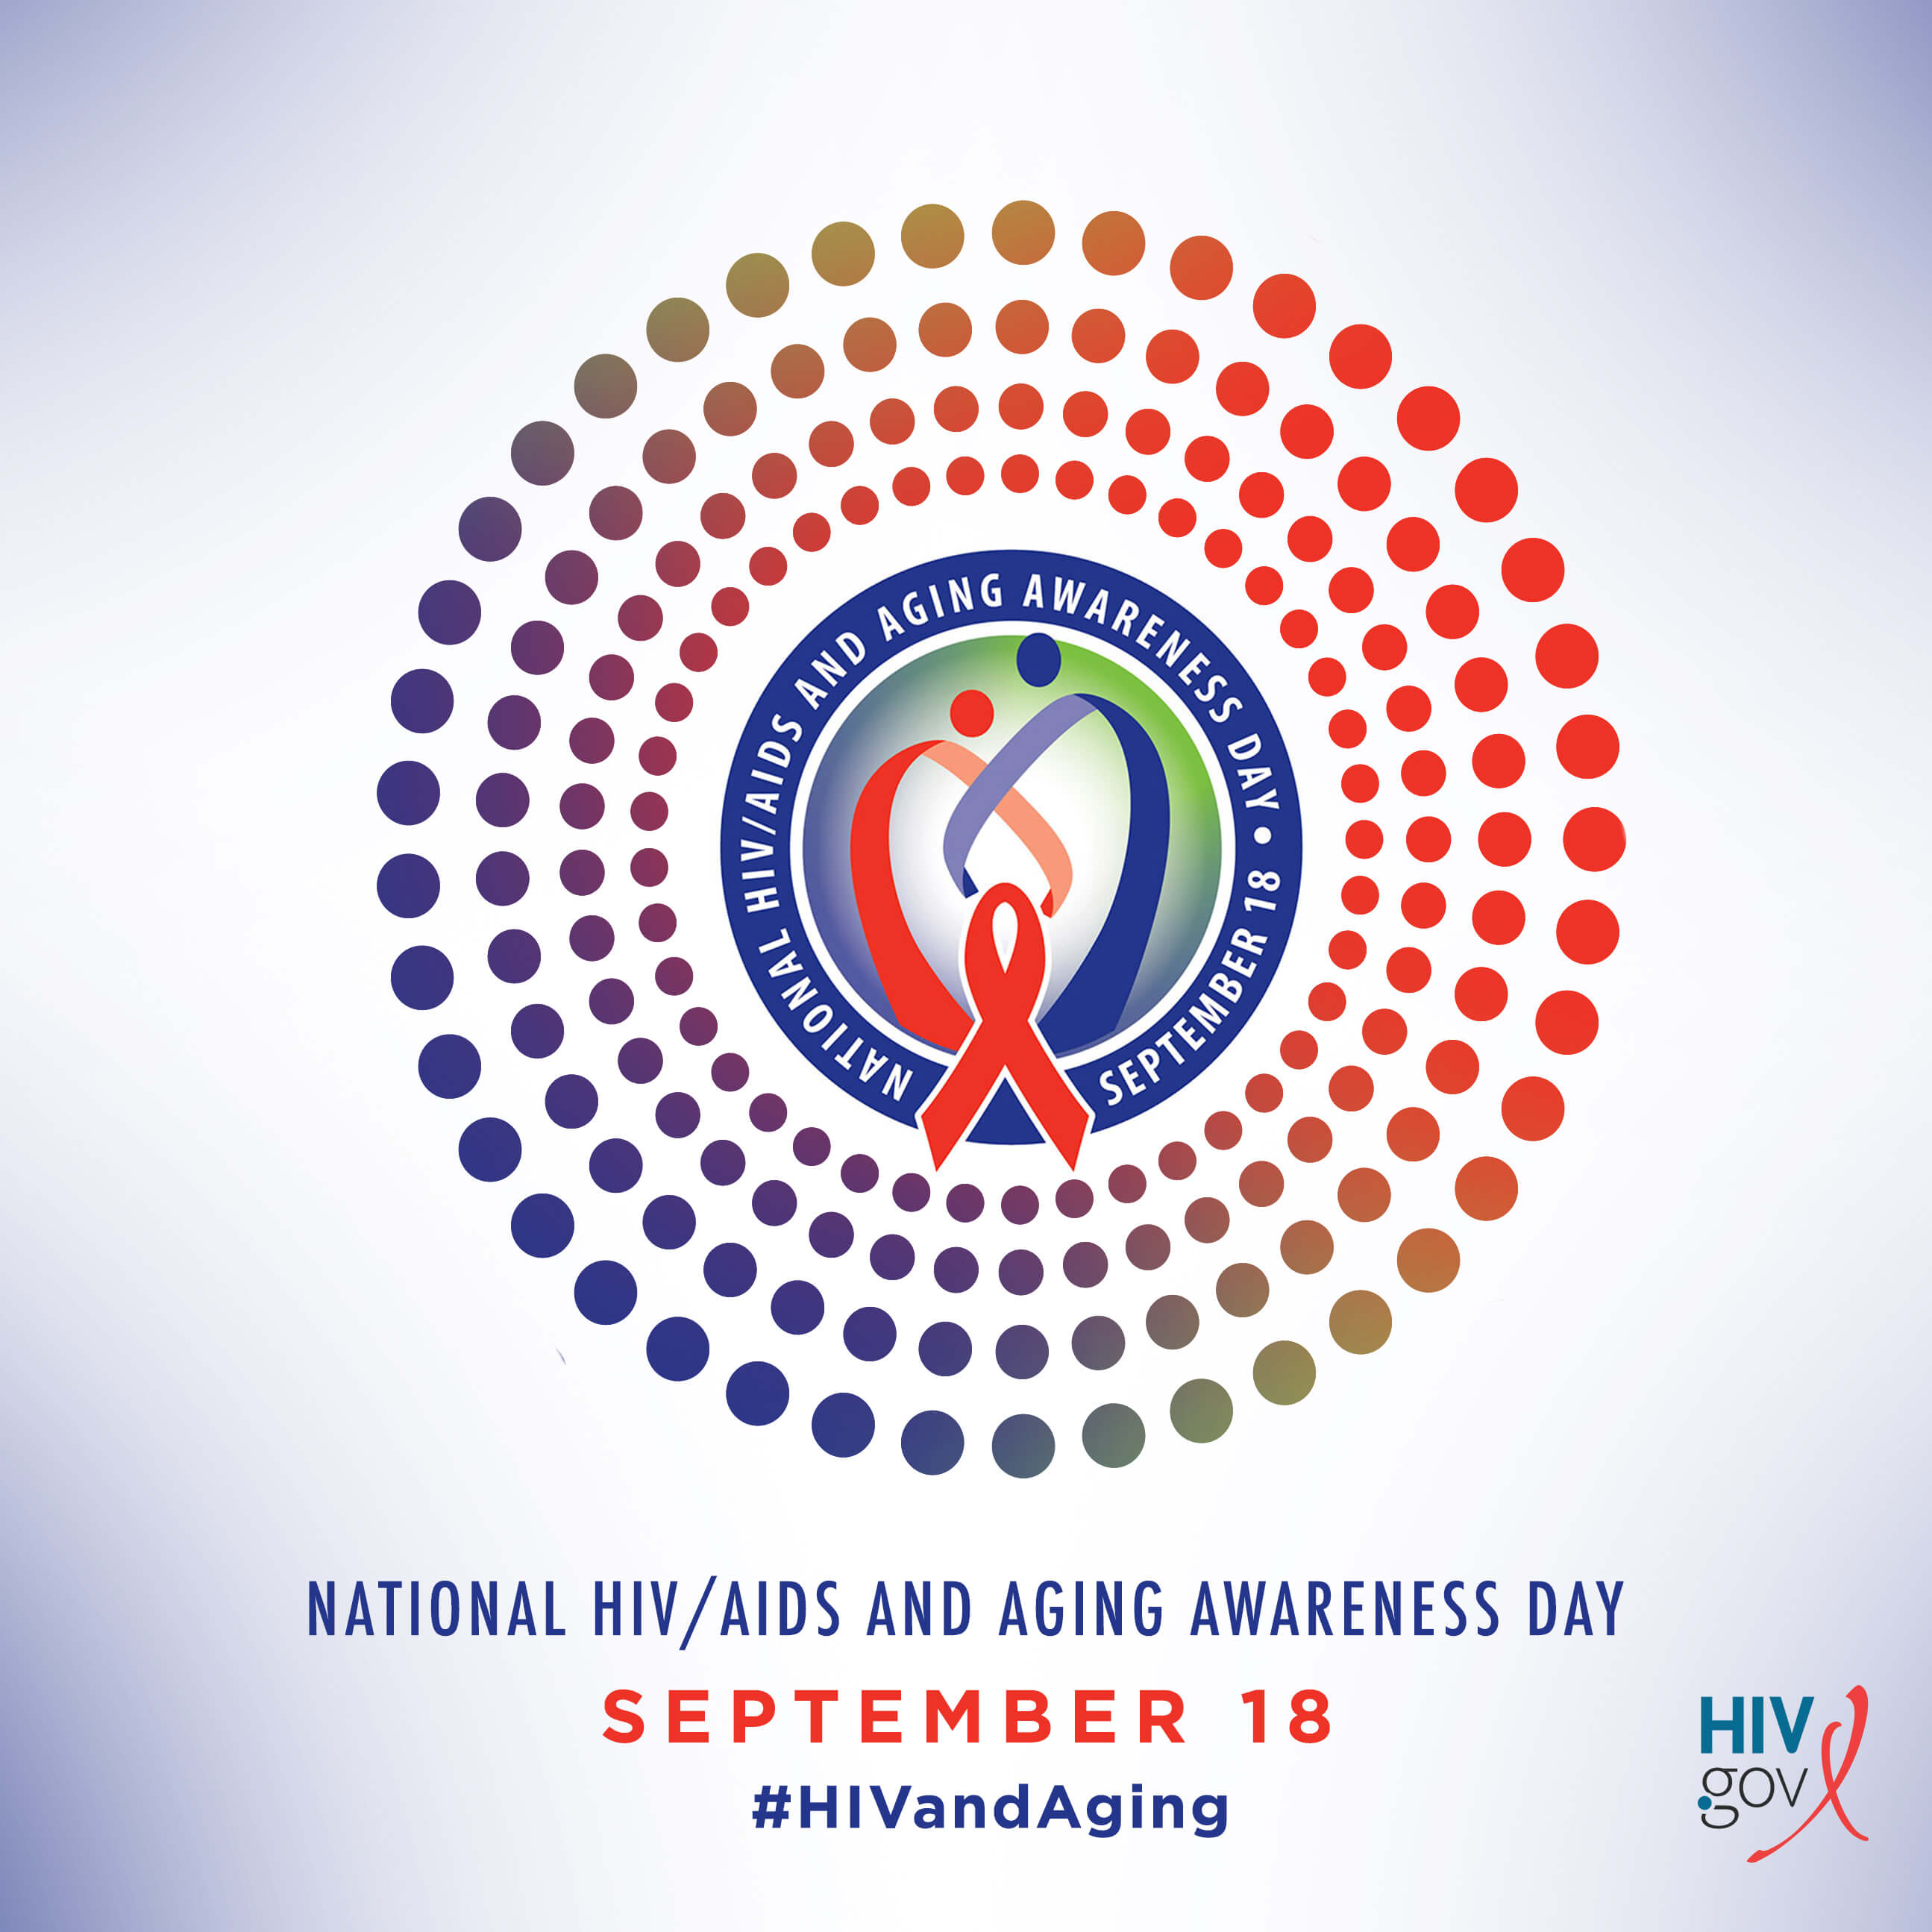 National HIV/AIDS and Aging Awareness Day, September 18. #HIVandAging